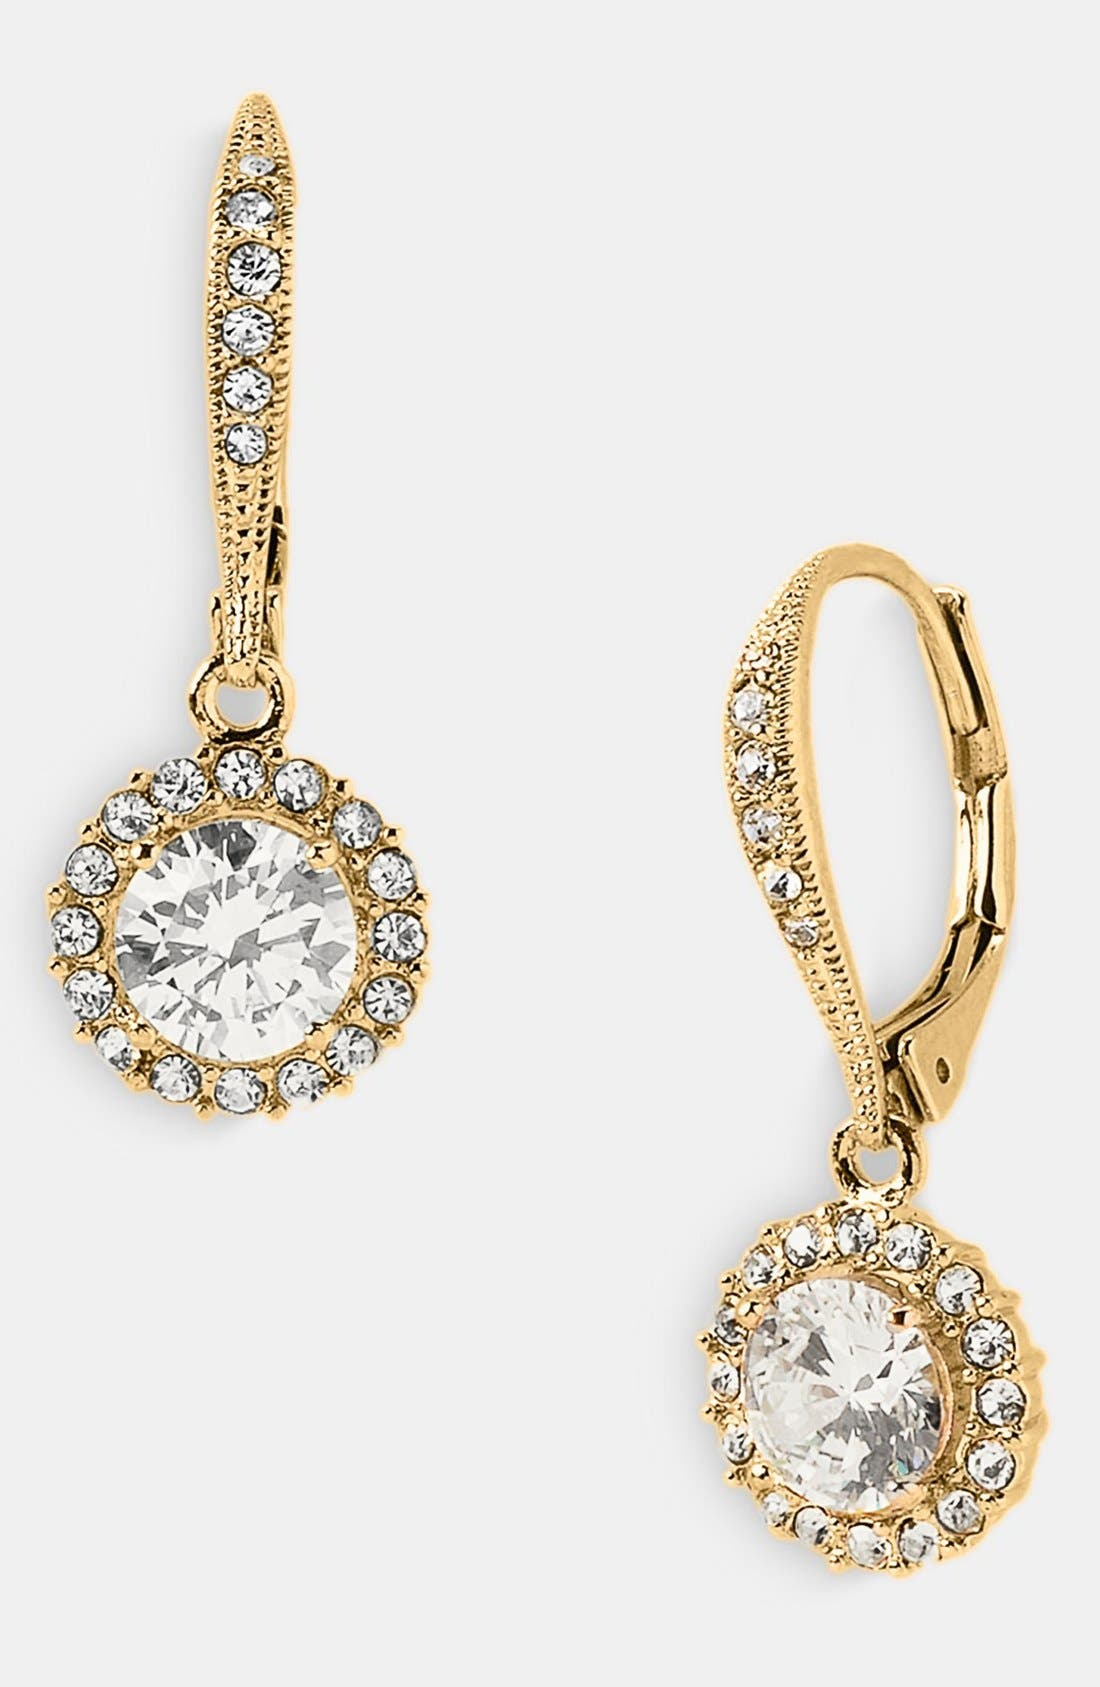 Cubic Zirconia Drop Earrings,                         Main,                         color, Gold/ Clear Crystal